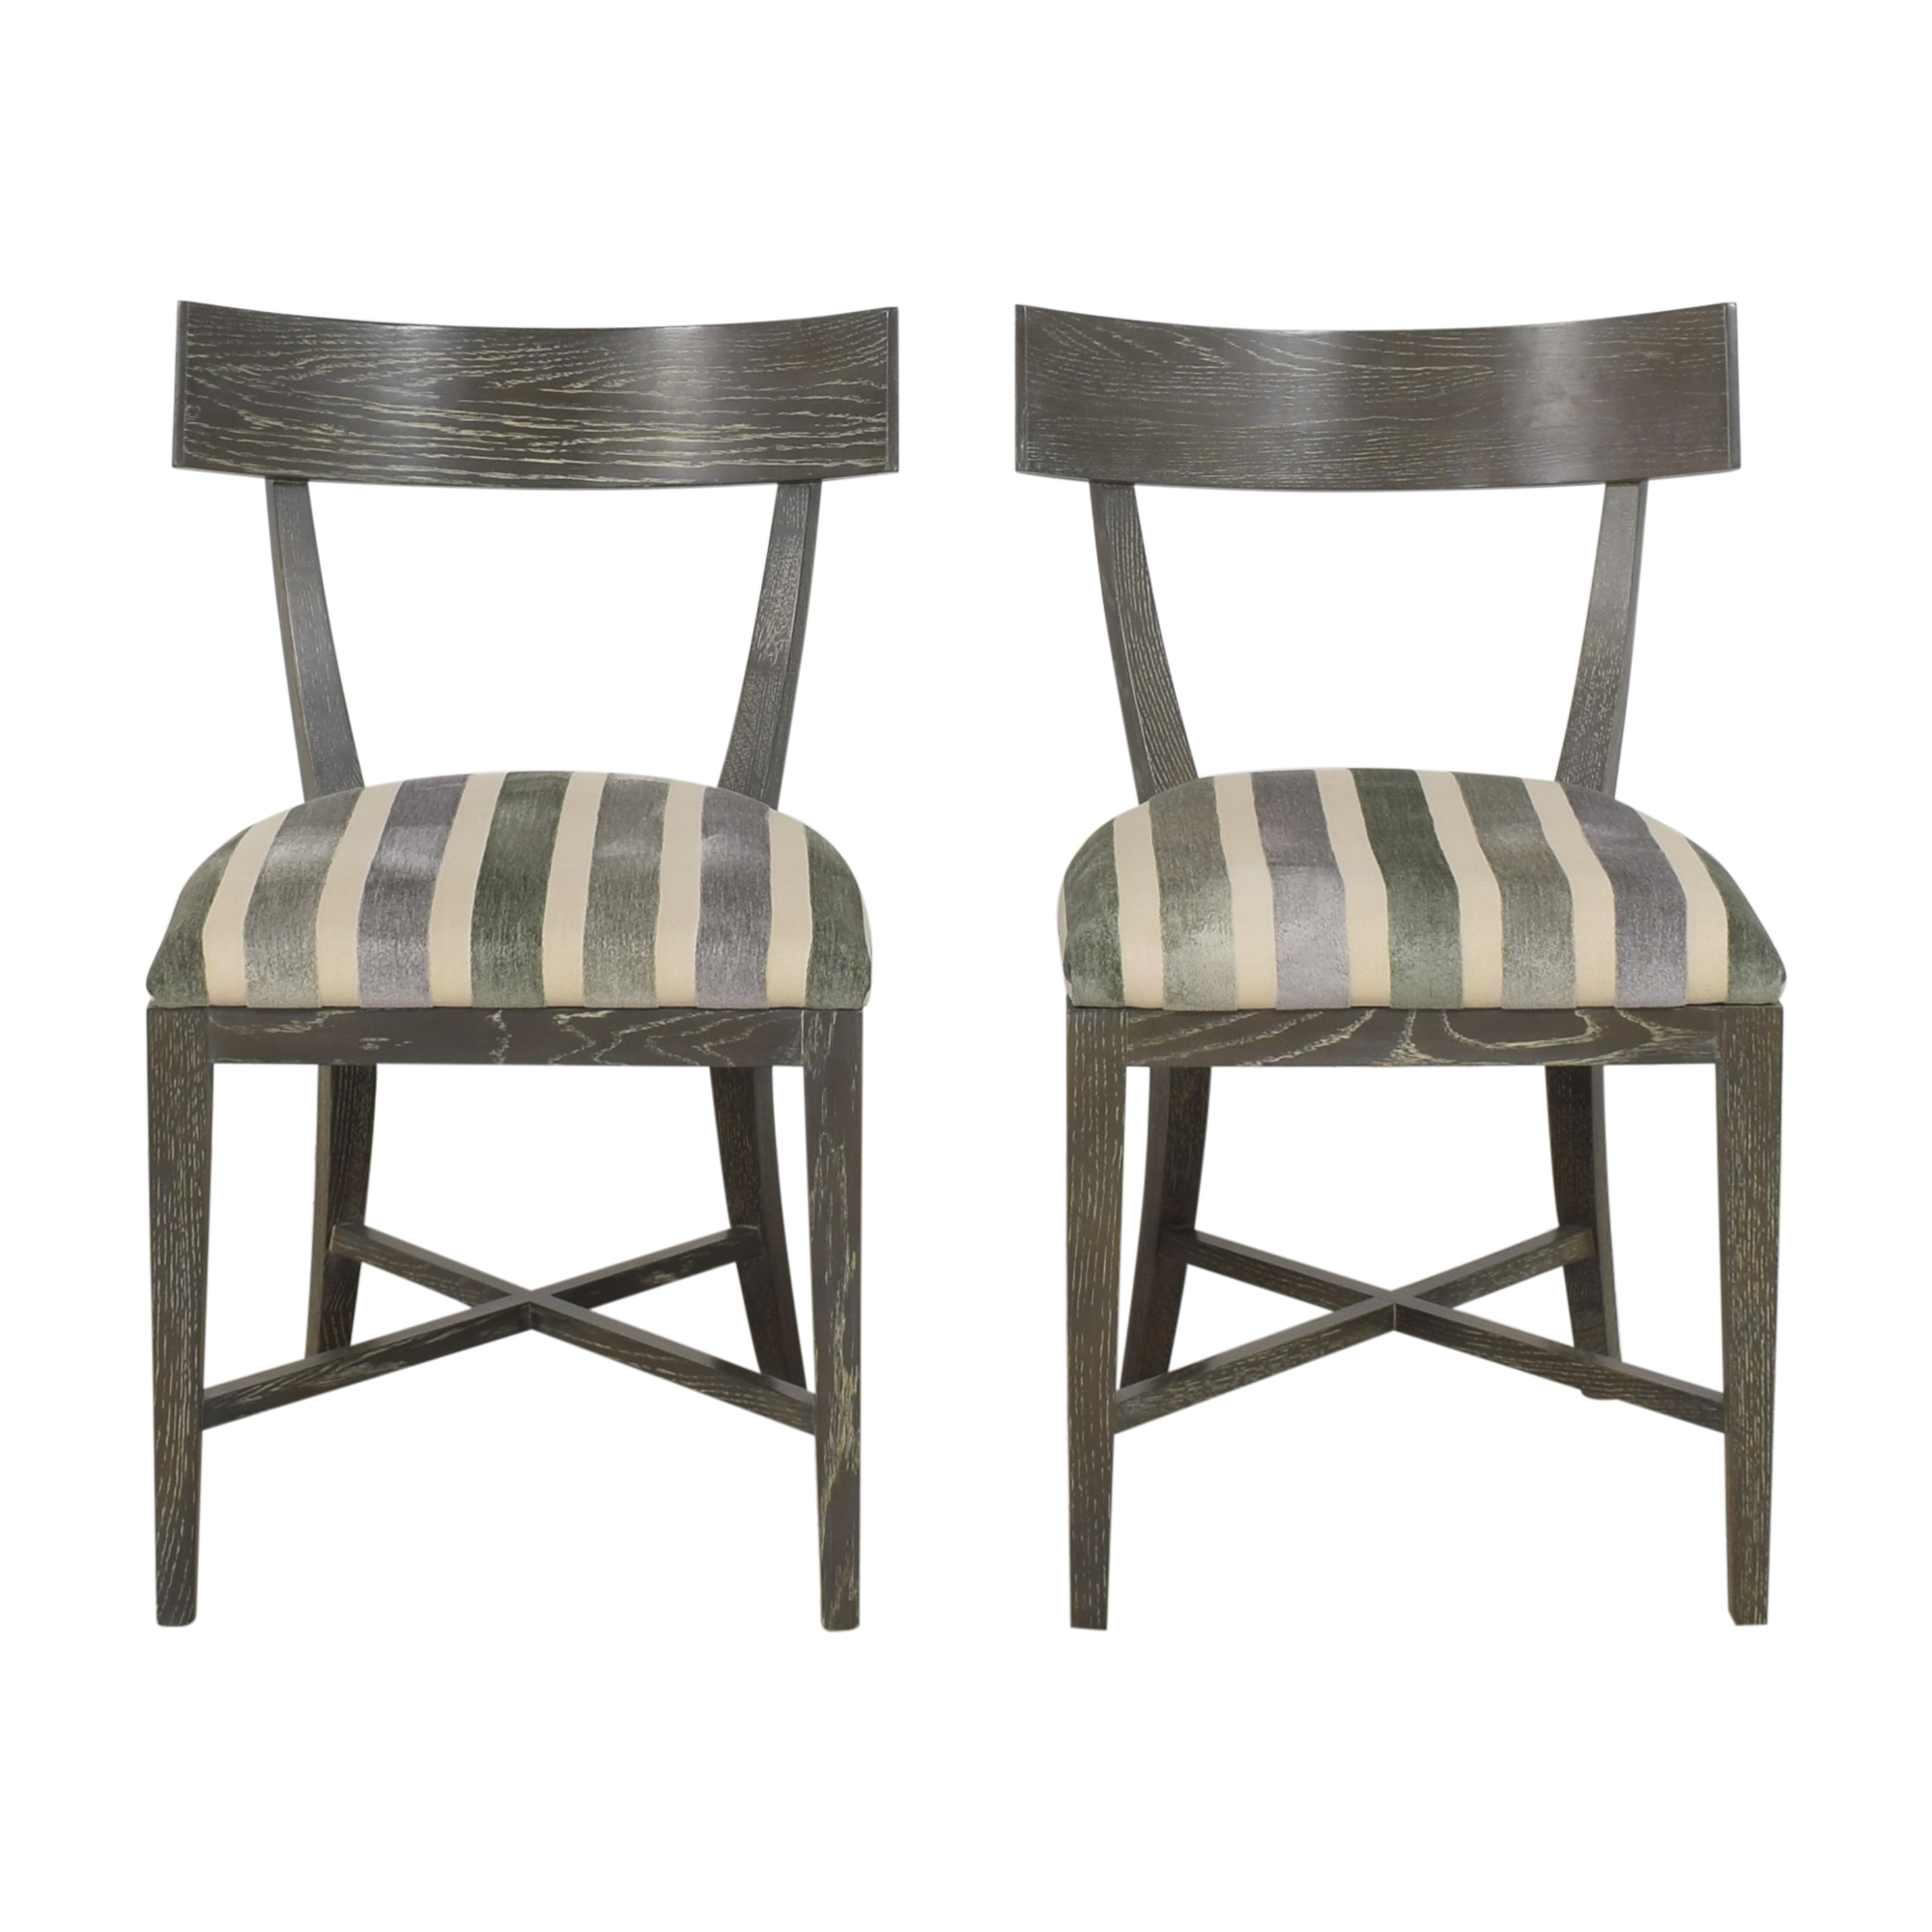 buy Arteriors Caden Dining Chairs Arteriors Chairs